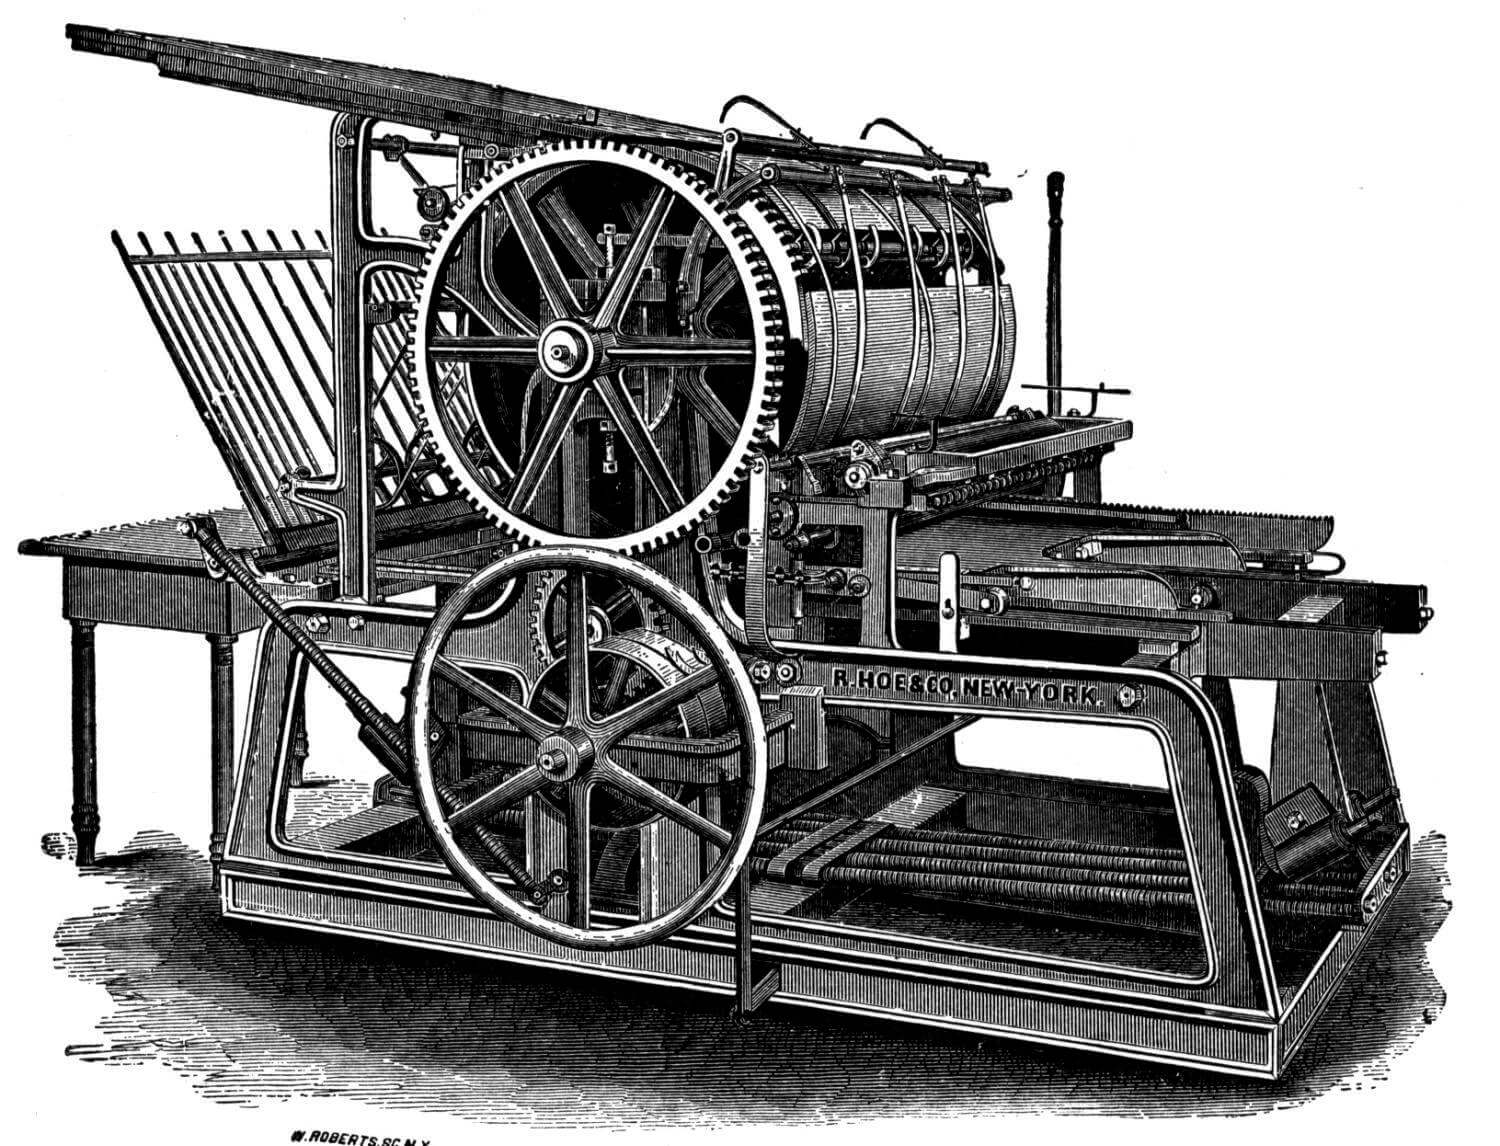 printing-press- baobiphucthinh.com- in an thiet ke, ly giay